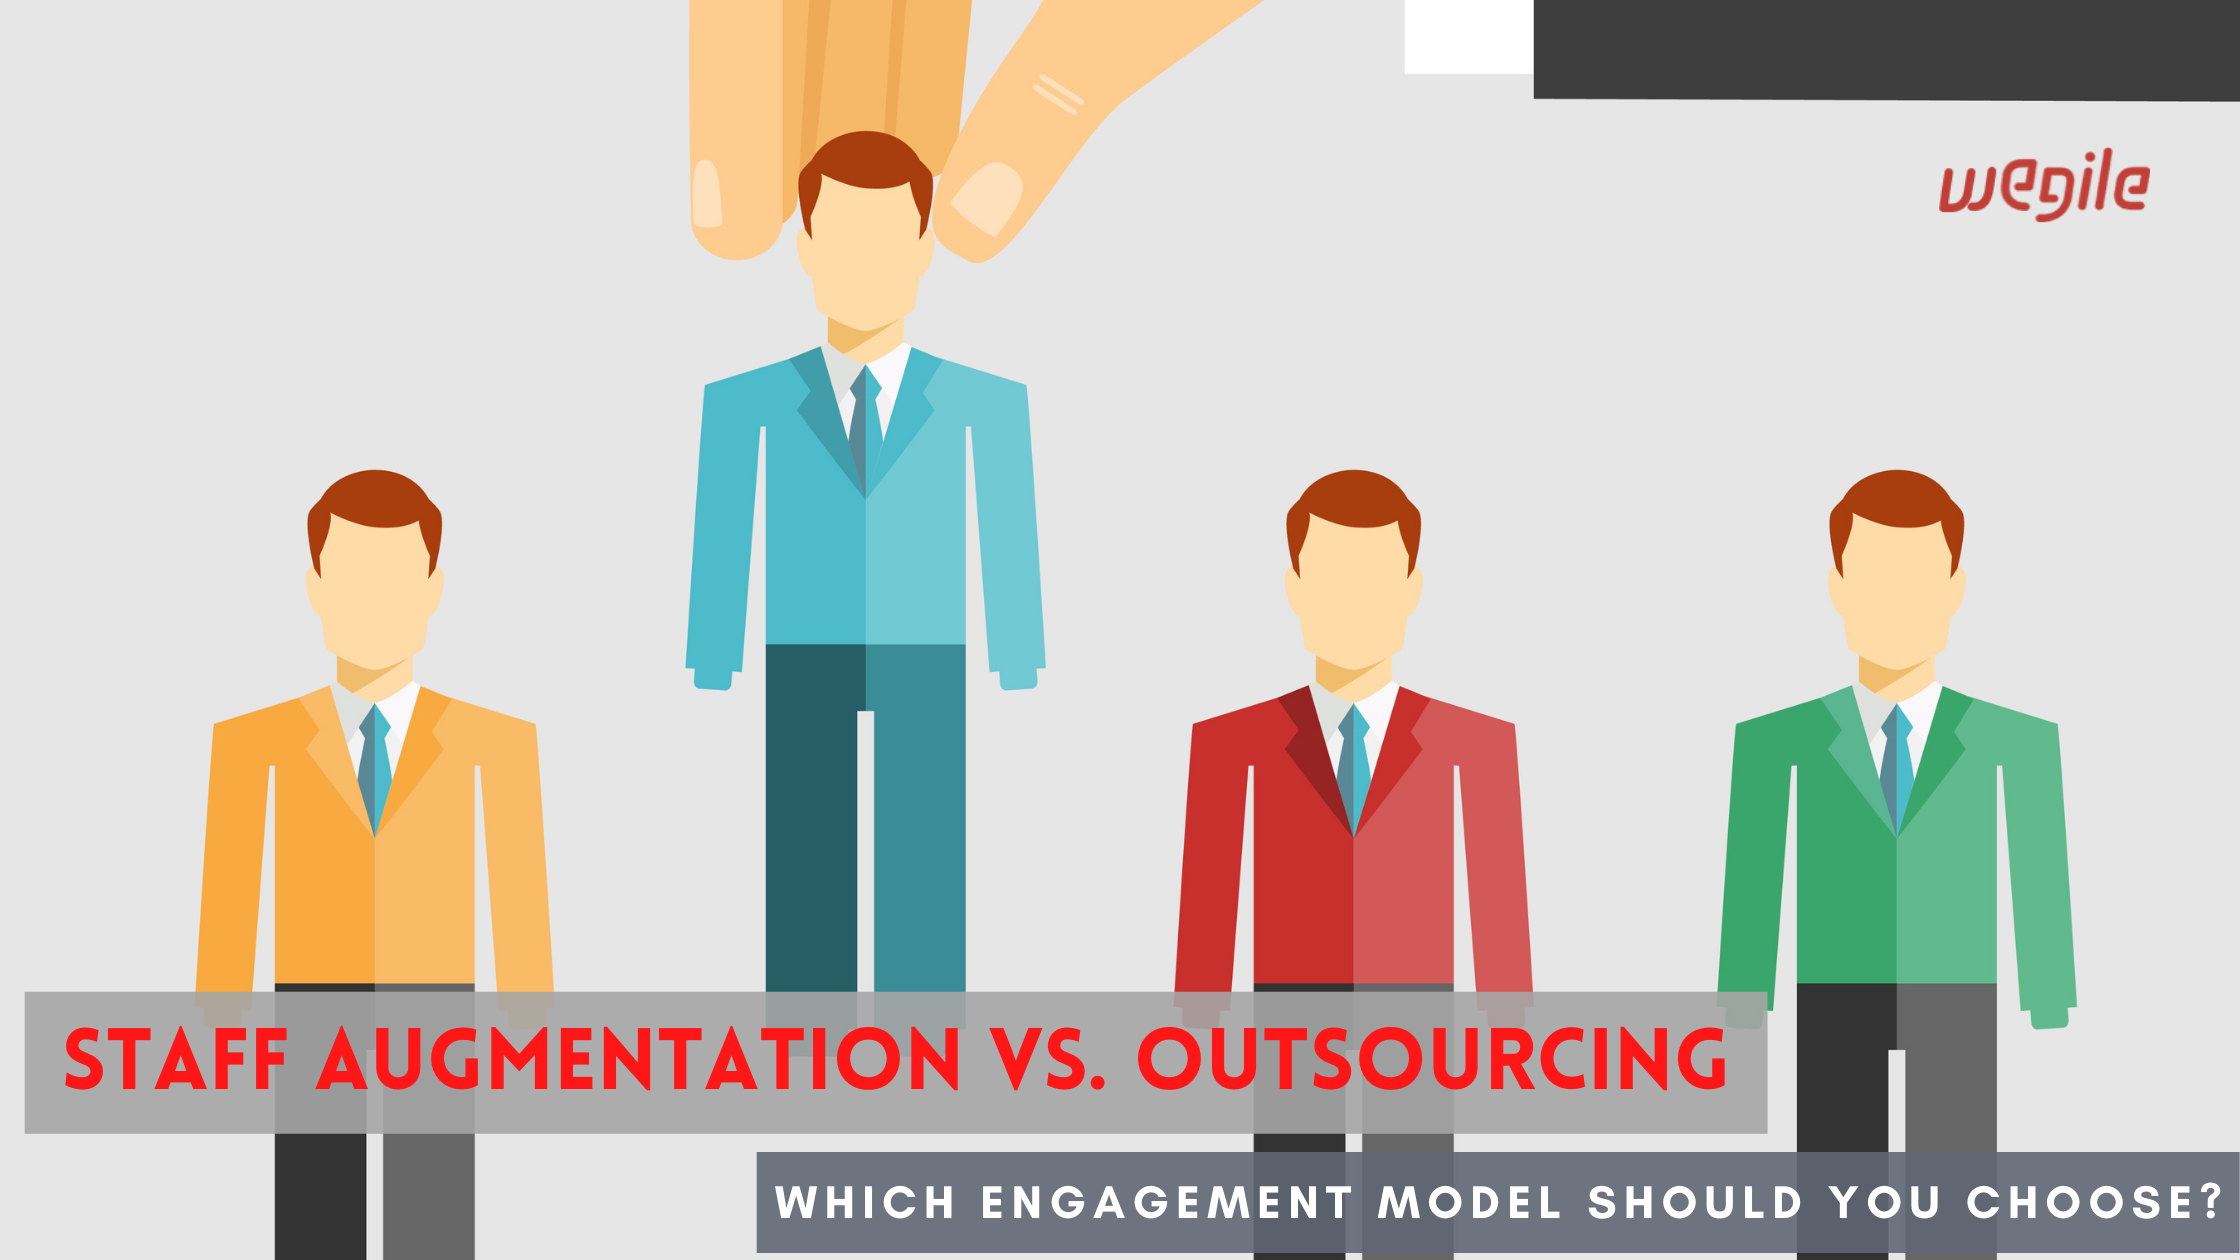 Staff Augmentation Vs. Outsourcing: Which Engagement Model Should You Choose?